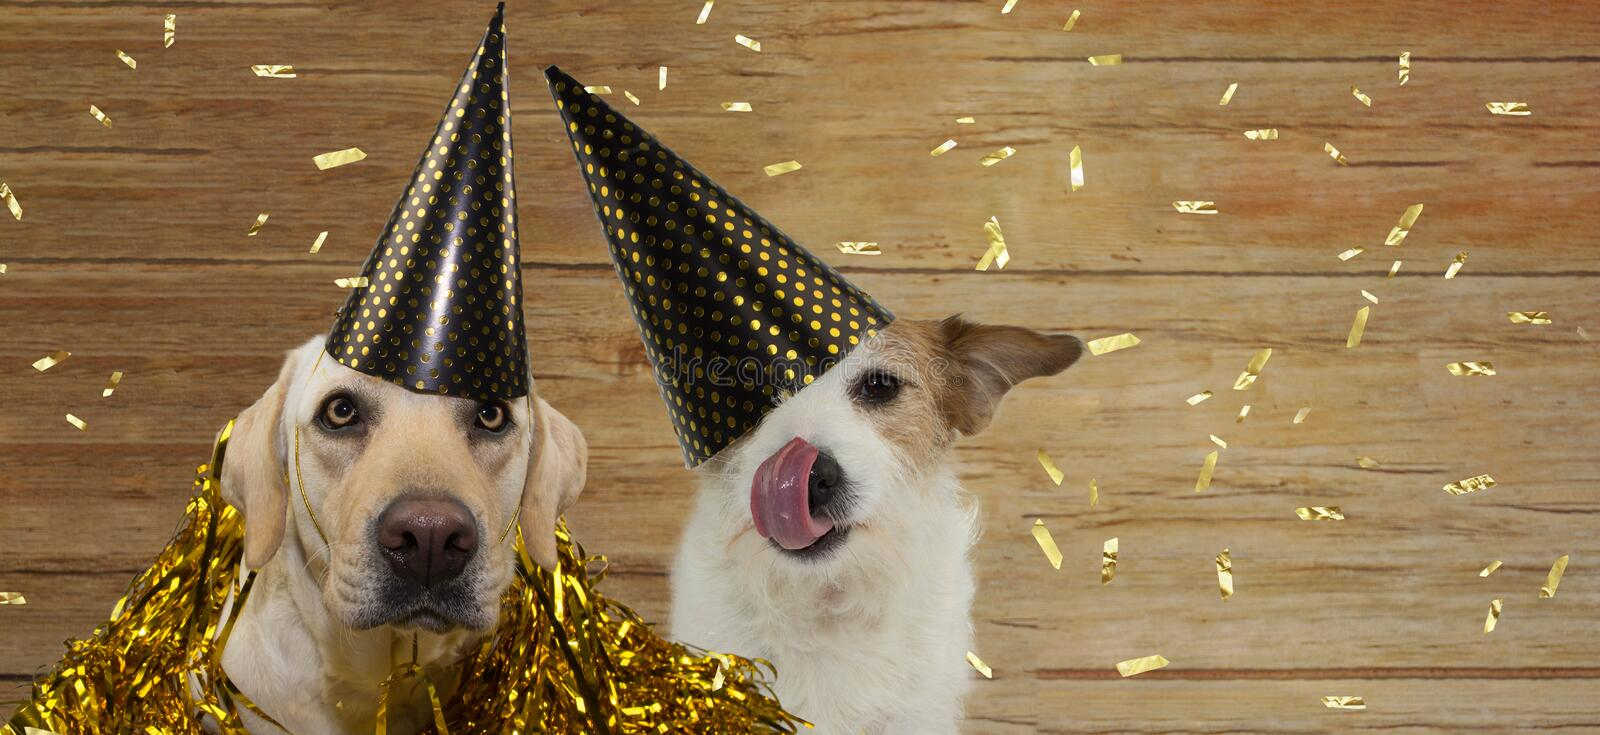 BANNER TWO HAPPY DOGS CELEBRATING BIRTHDAY, NEW YEAR OR ANNIVERSARY PARTY  AGAINST WOODEN BACKGROUND WITH GOLDEN CONFETTI FALLING. BANNER TWO HAPPY DOGS stock photo